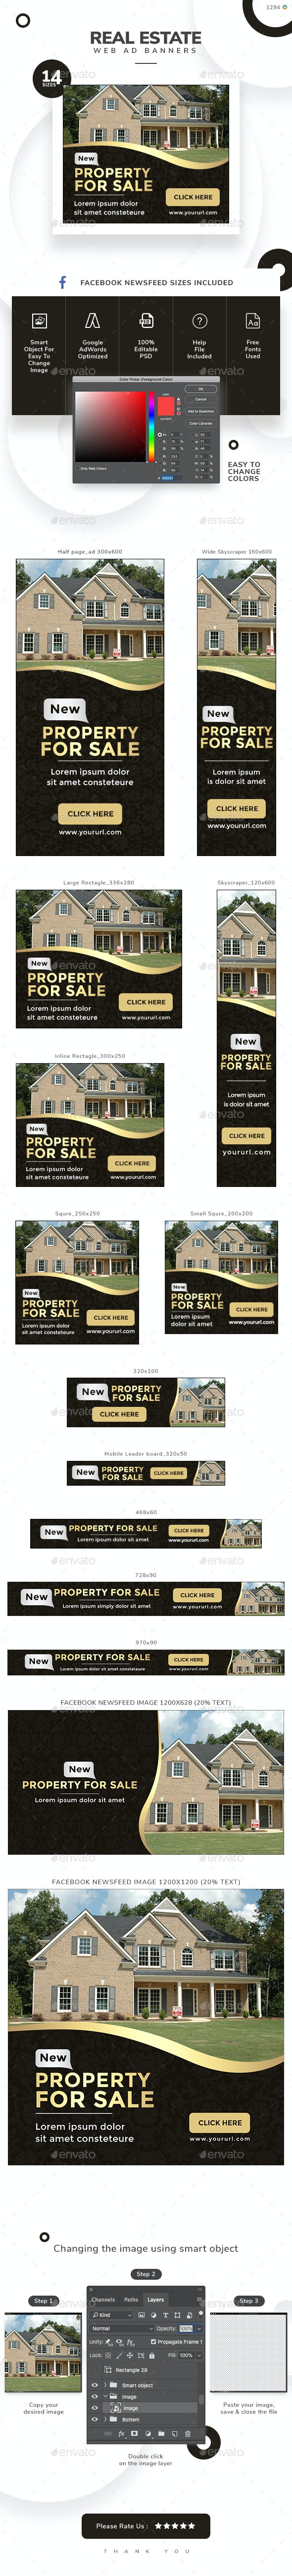 Real Estate Web Banners - Updated! - Banners & Ads Web Elements